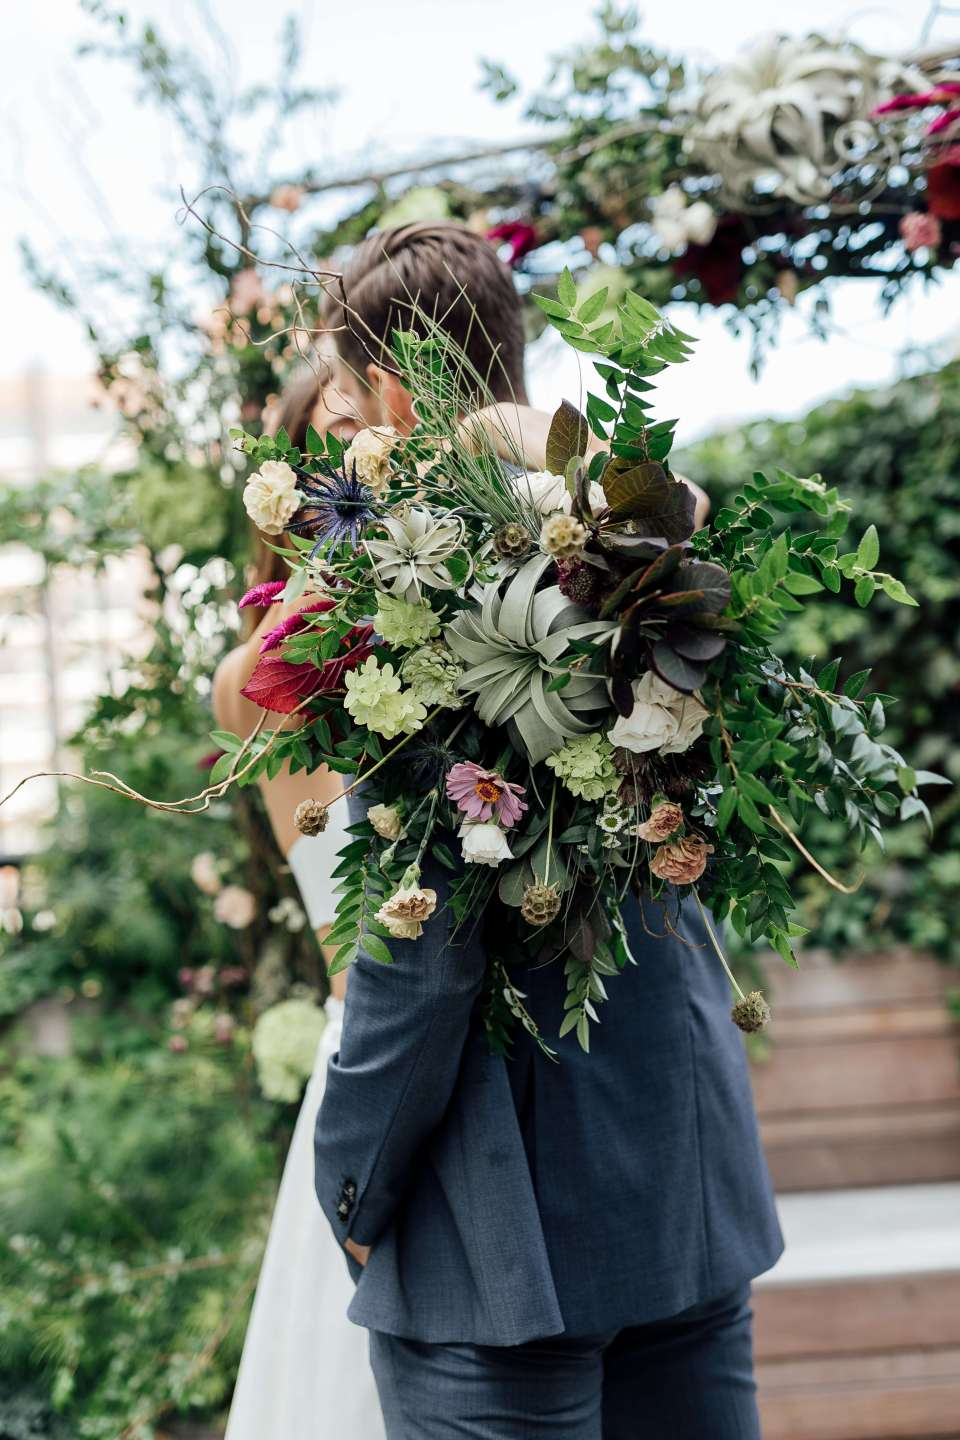 Pictured is a large bouquet of ethical wedding flowers from our ethical wedding styled photo shoot.